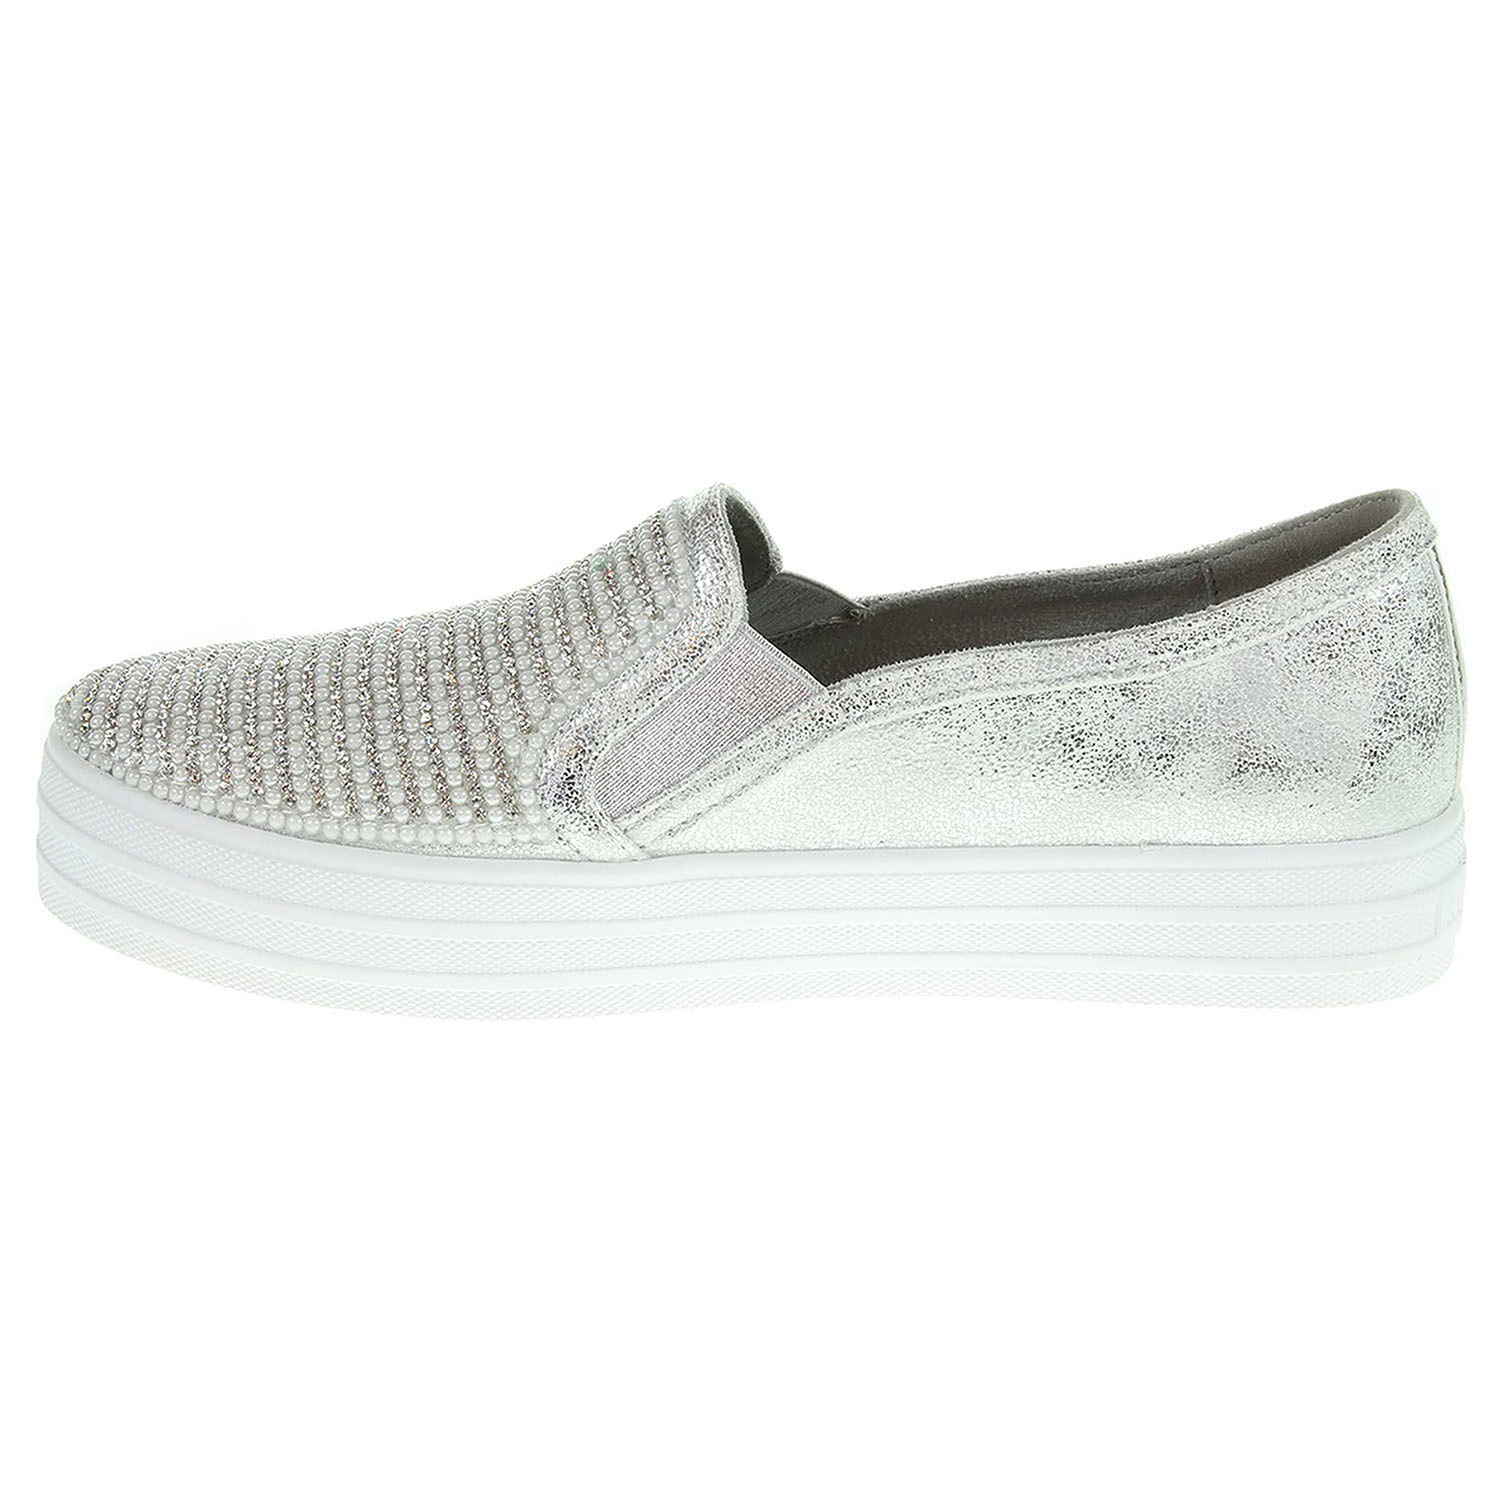 detail Skechers Double Up - Shiny Dancer silver